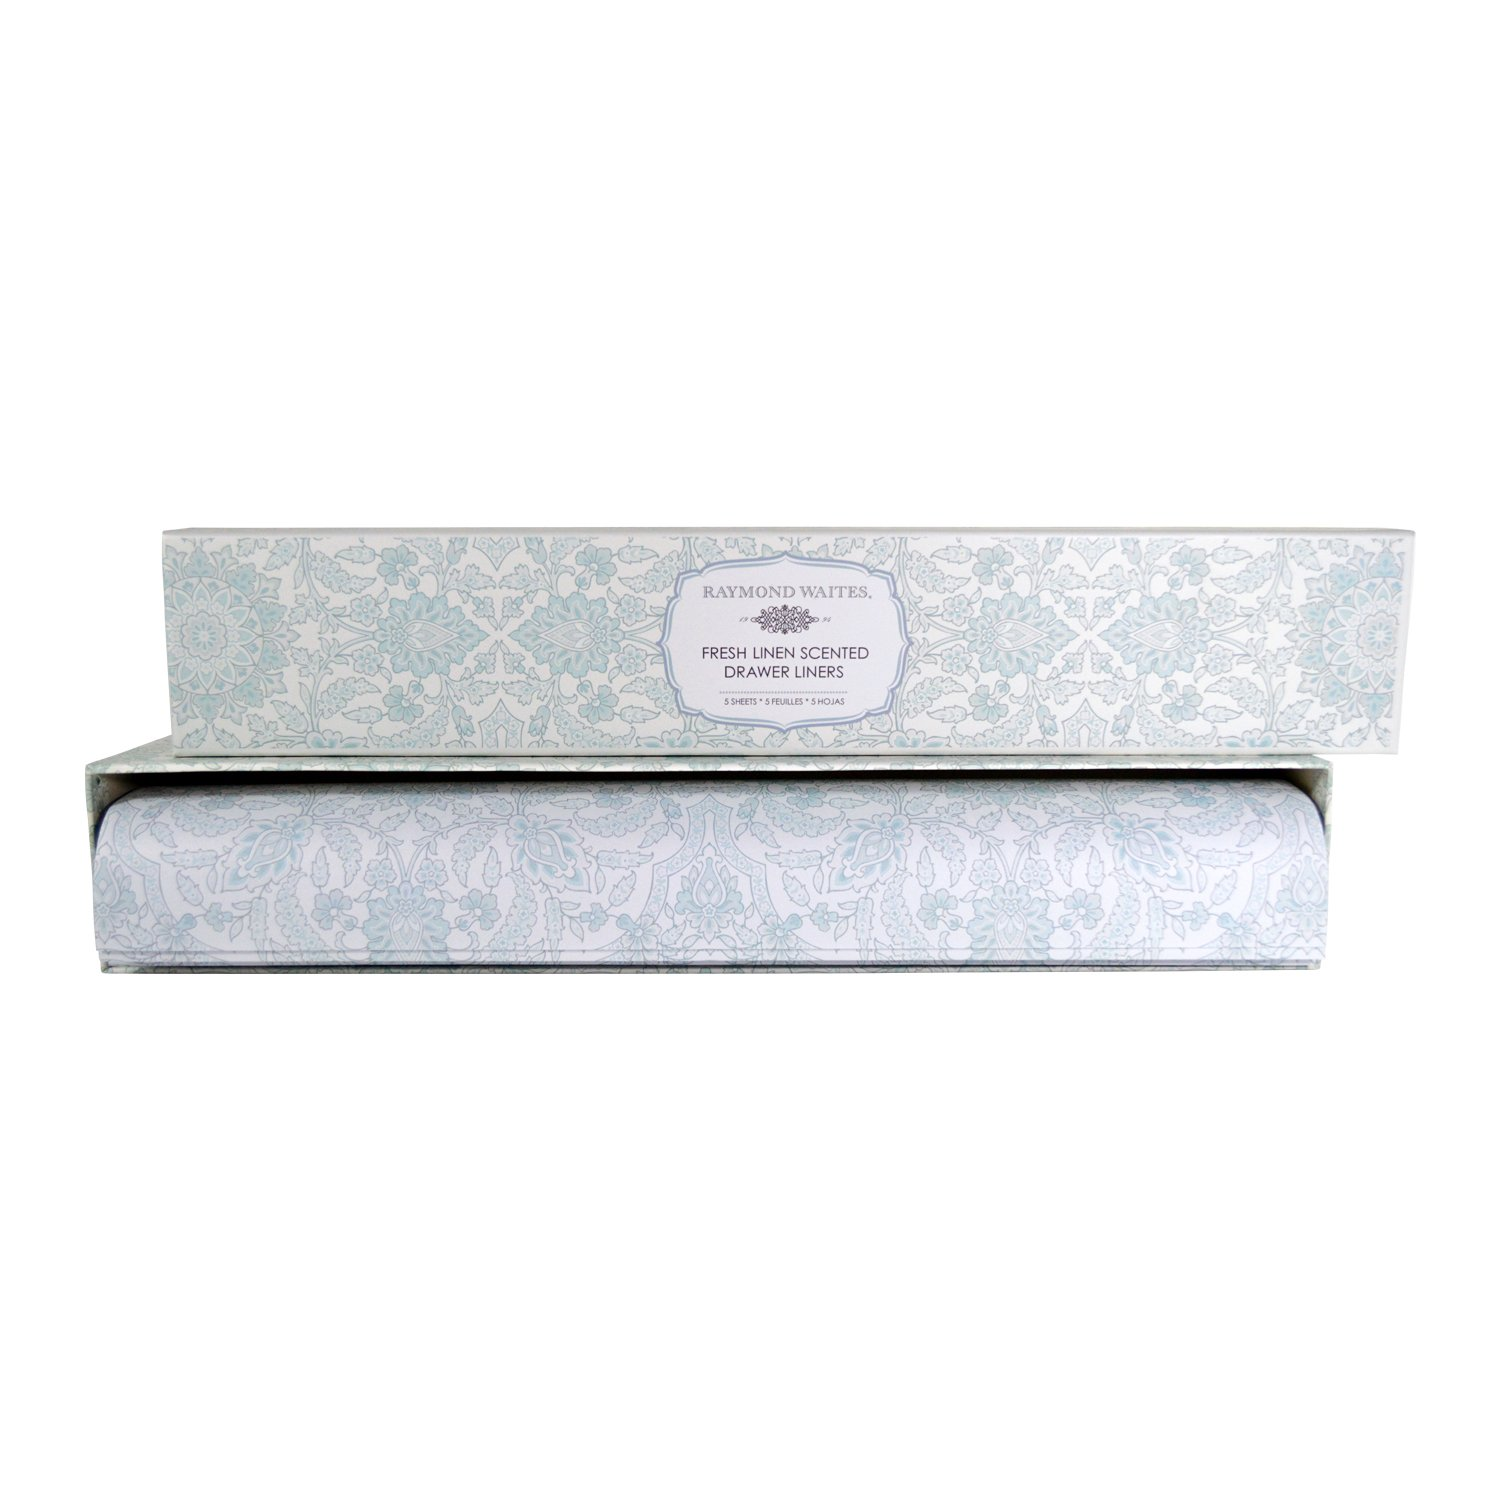 Raymond Waites Scented Fragrant Drawer Liners For Dresser, Linen Closet  Shelves, 5 Scented Sheets (Fresh Linen) ...